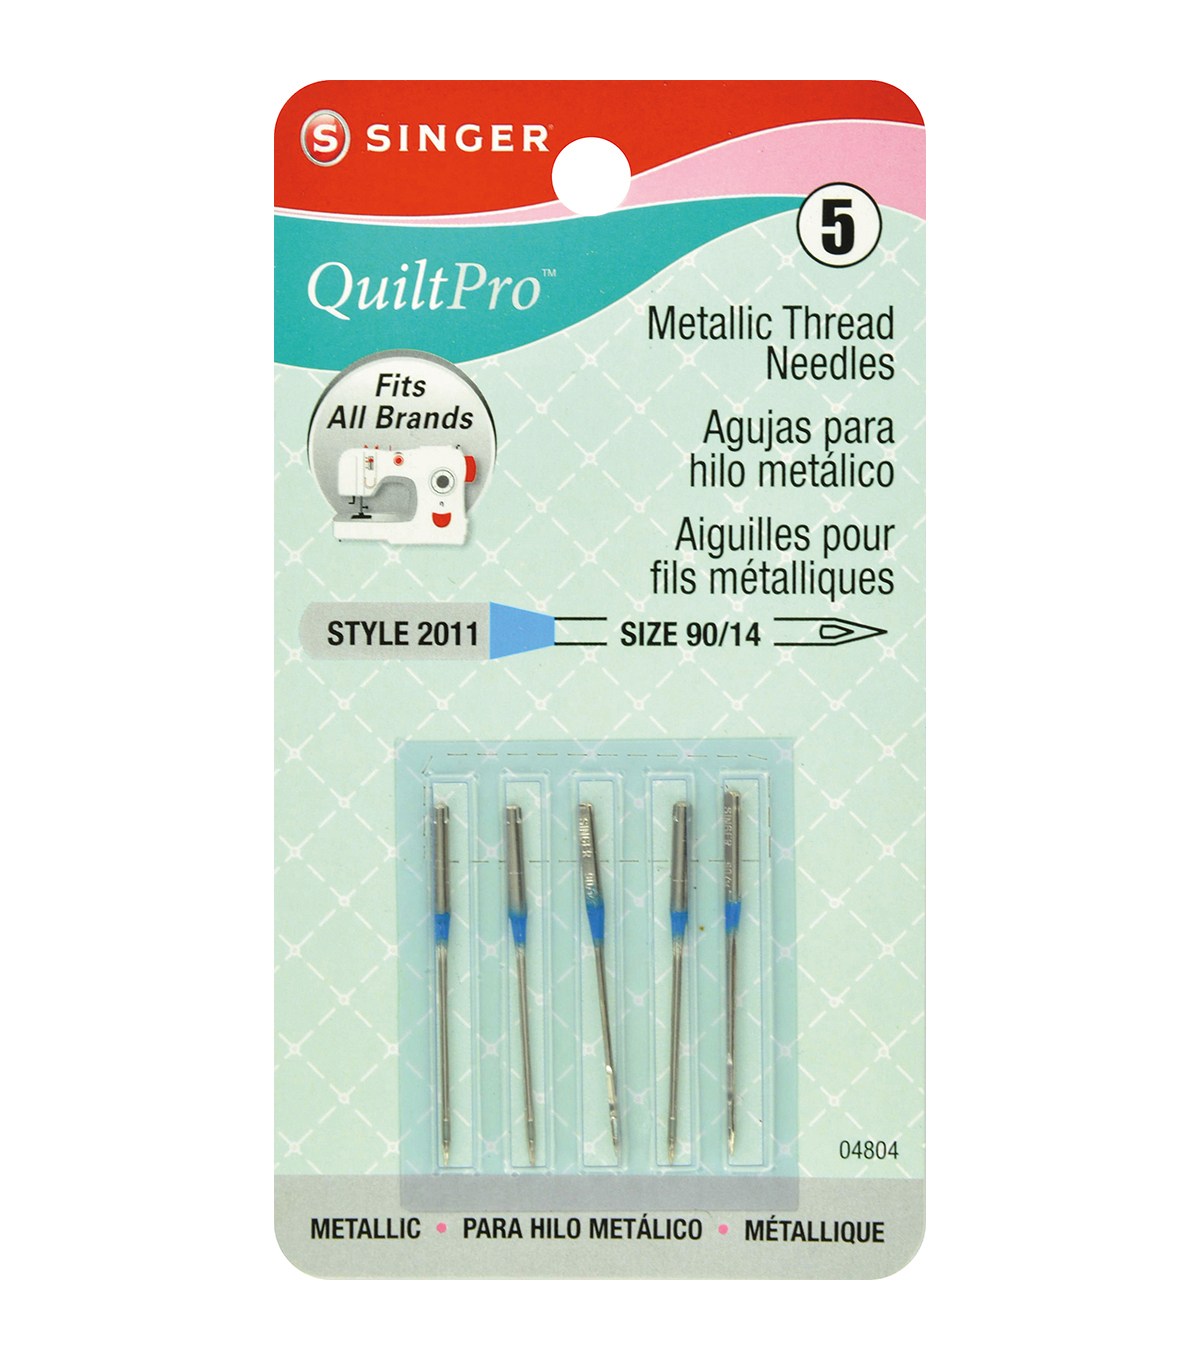 QuiltPro Metallic Thread Machine Needles